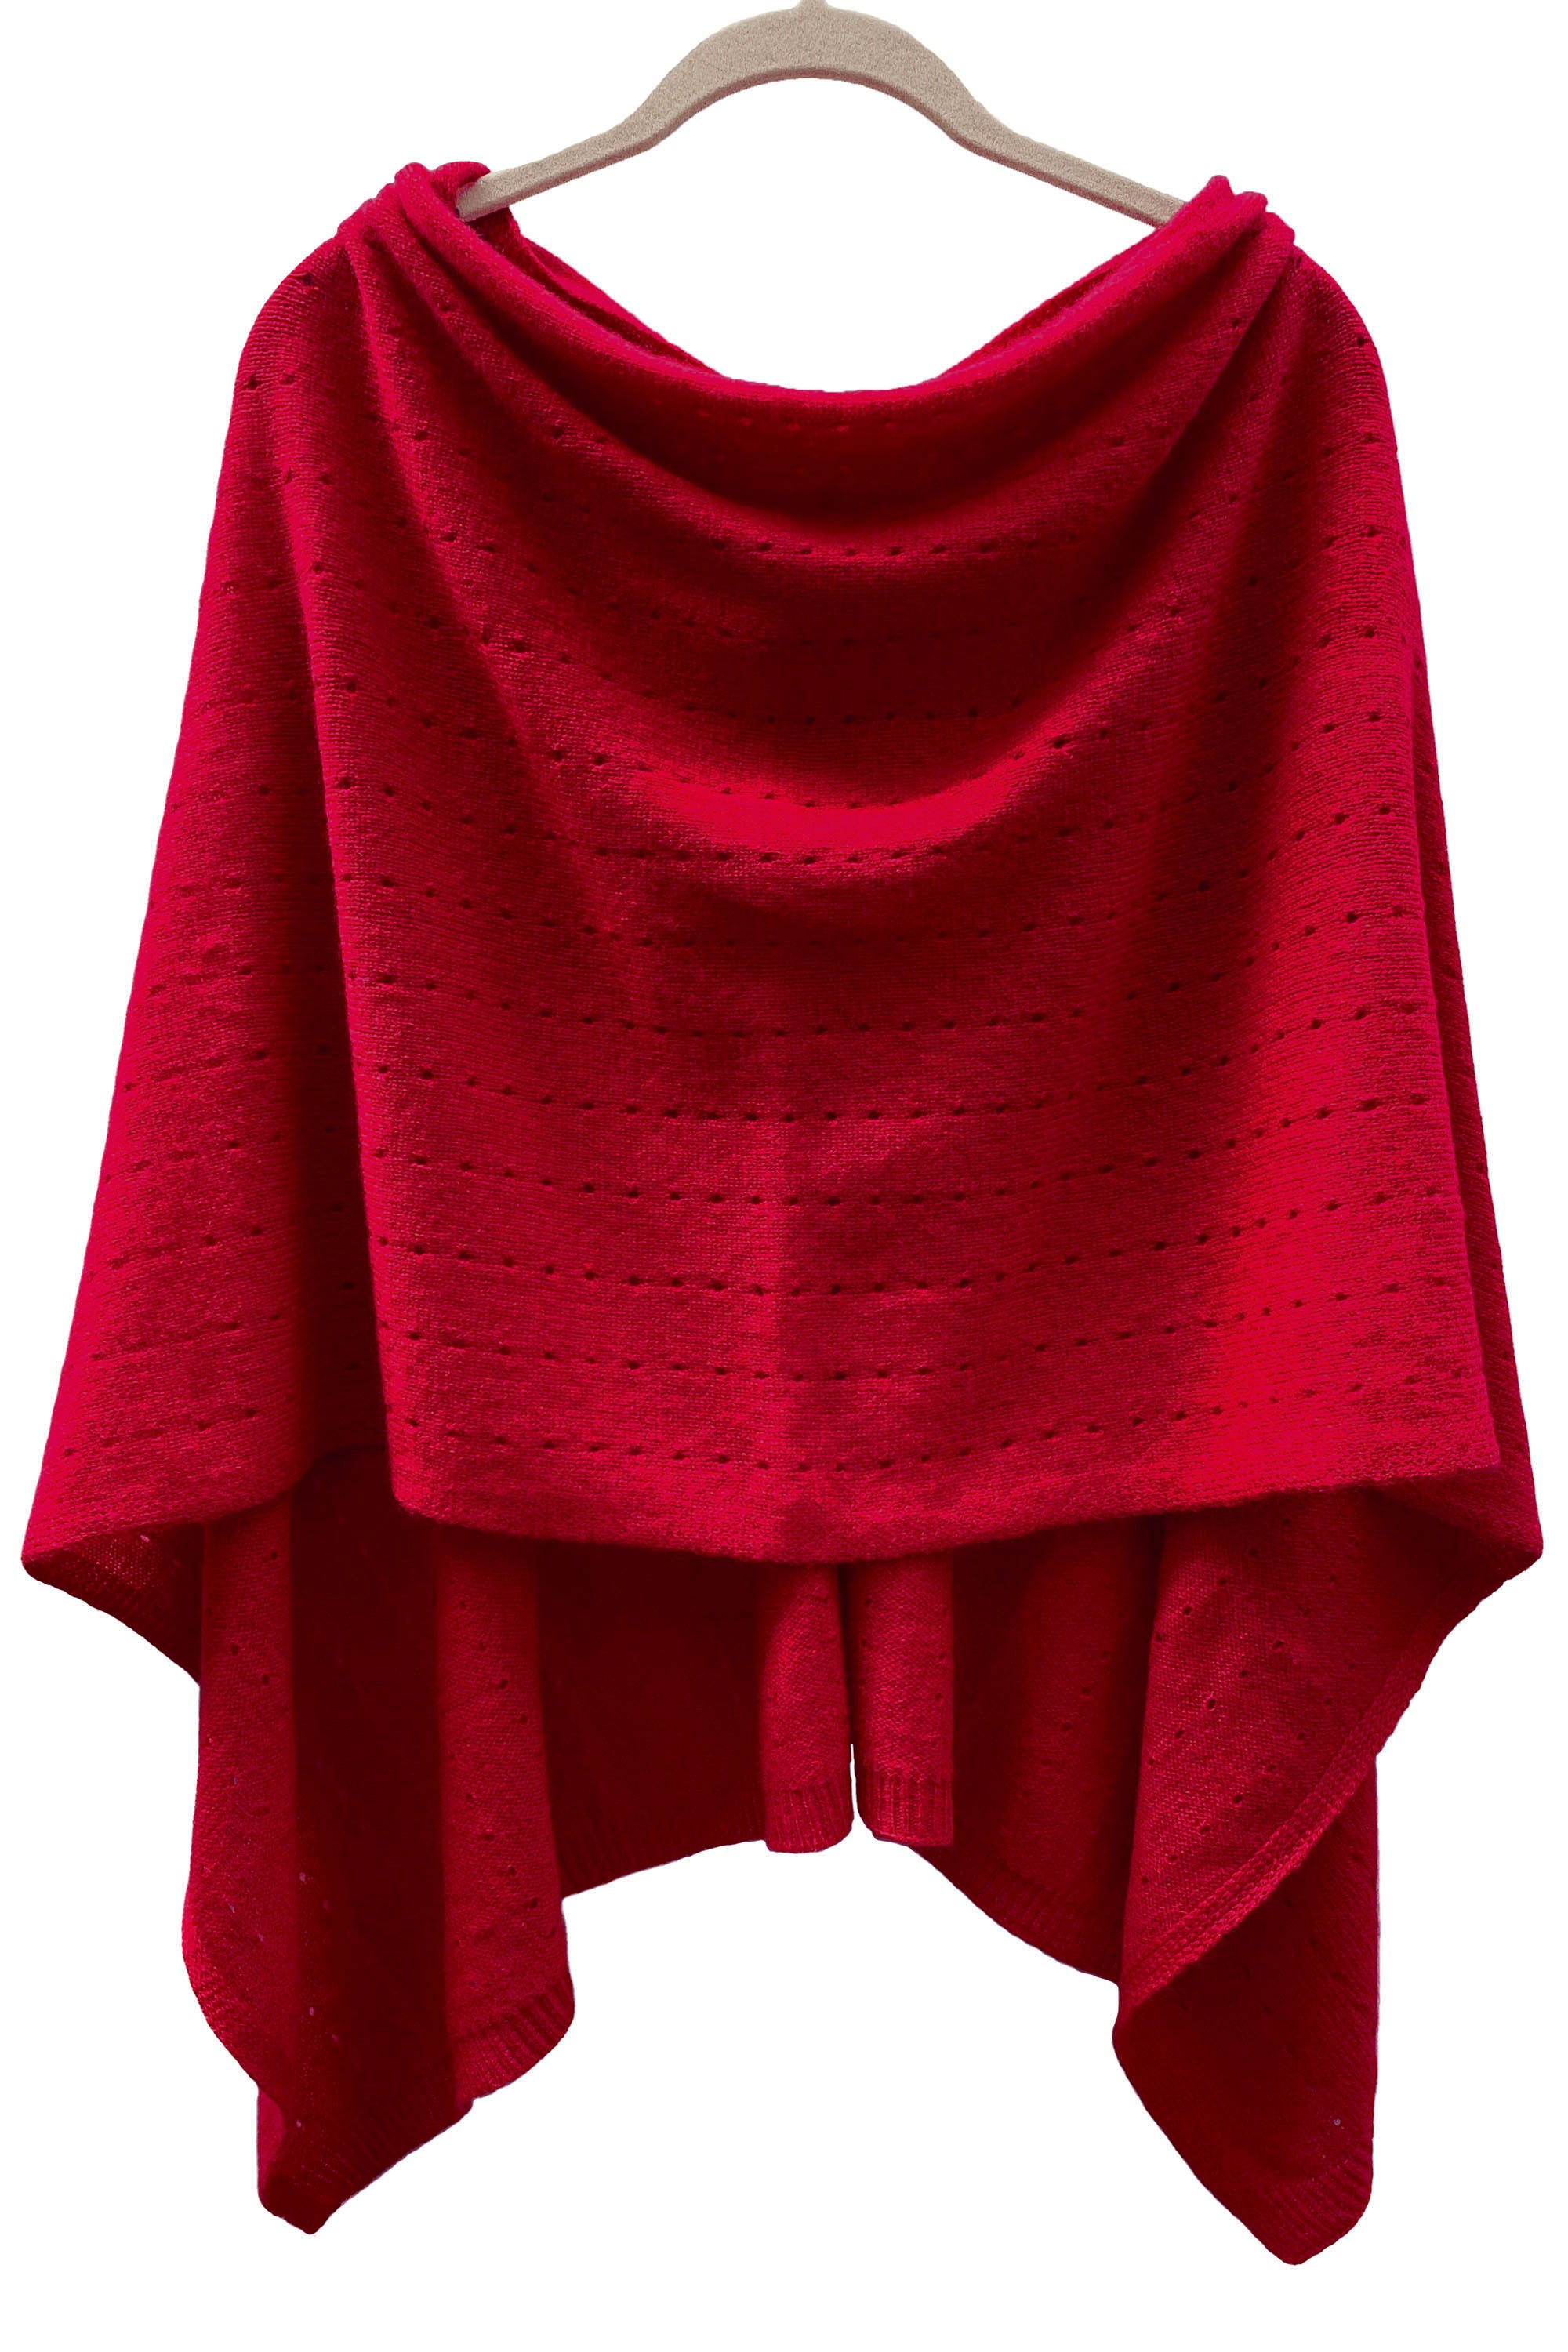 Deep red Cashmere Poncho UK, Women Wrap, Cape, Shawls, Scarf, shawl, cardigan, light weight, summer poncho, ladies small button poncho sweater sale | SEMON Cashmere